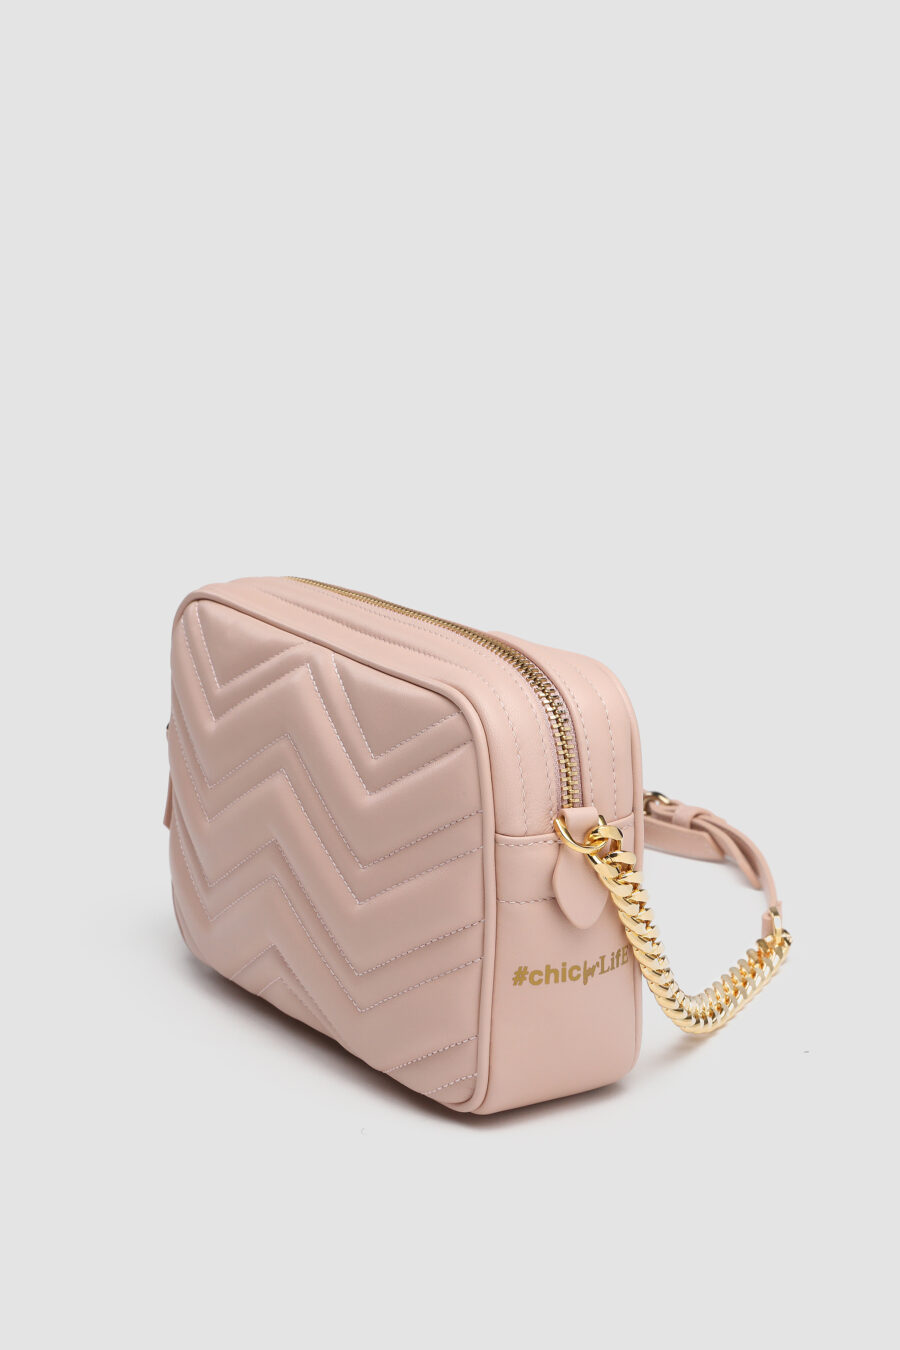 Chic bag in pelle rosa 7